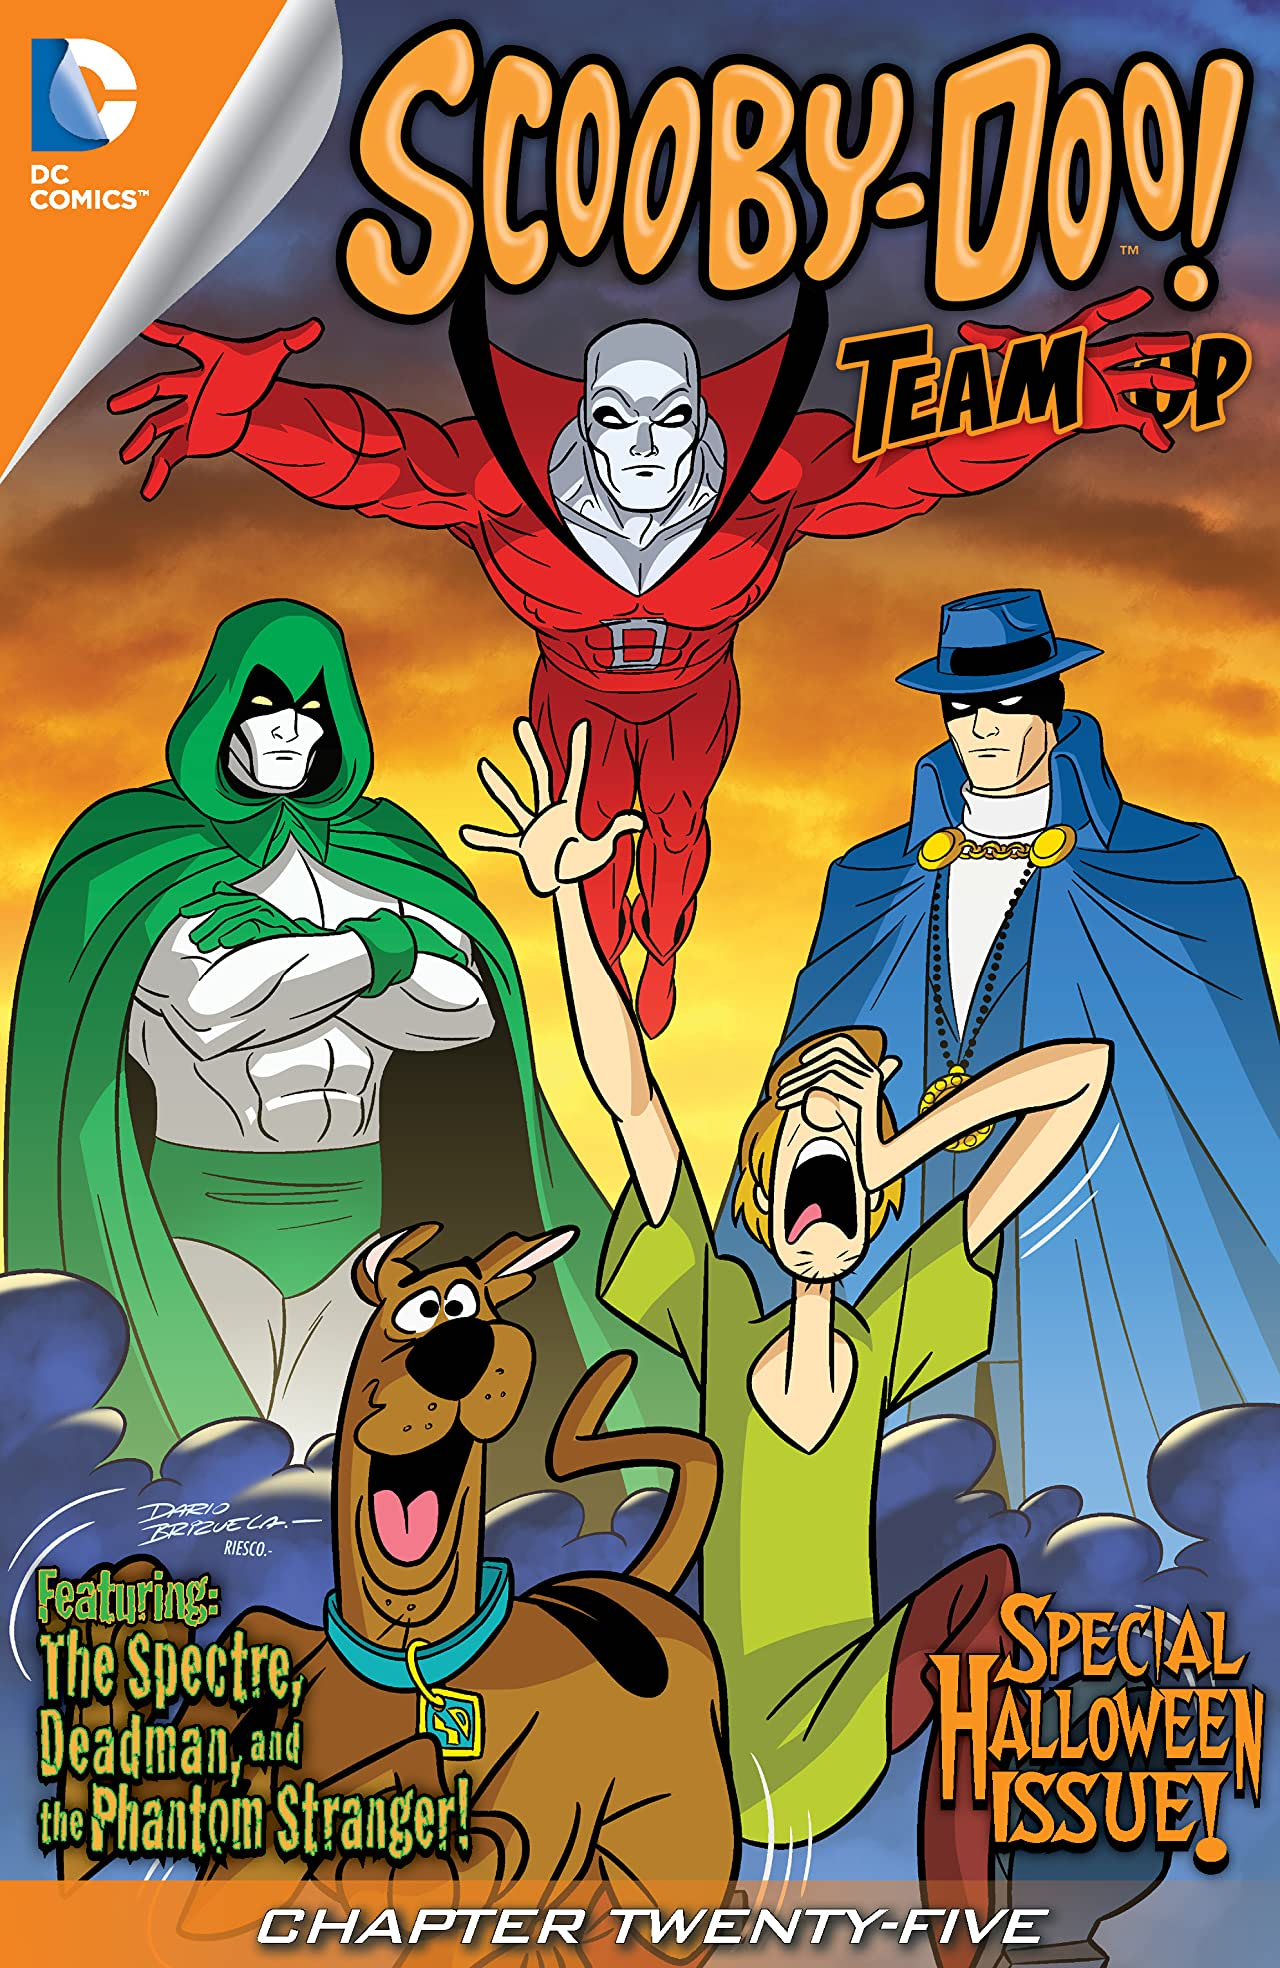 Scooby-Doo Team-Up (2013-) #25